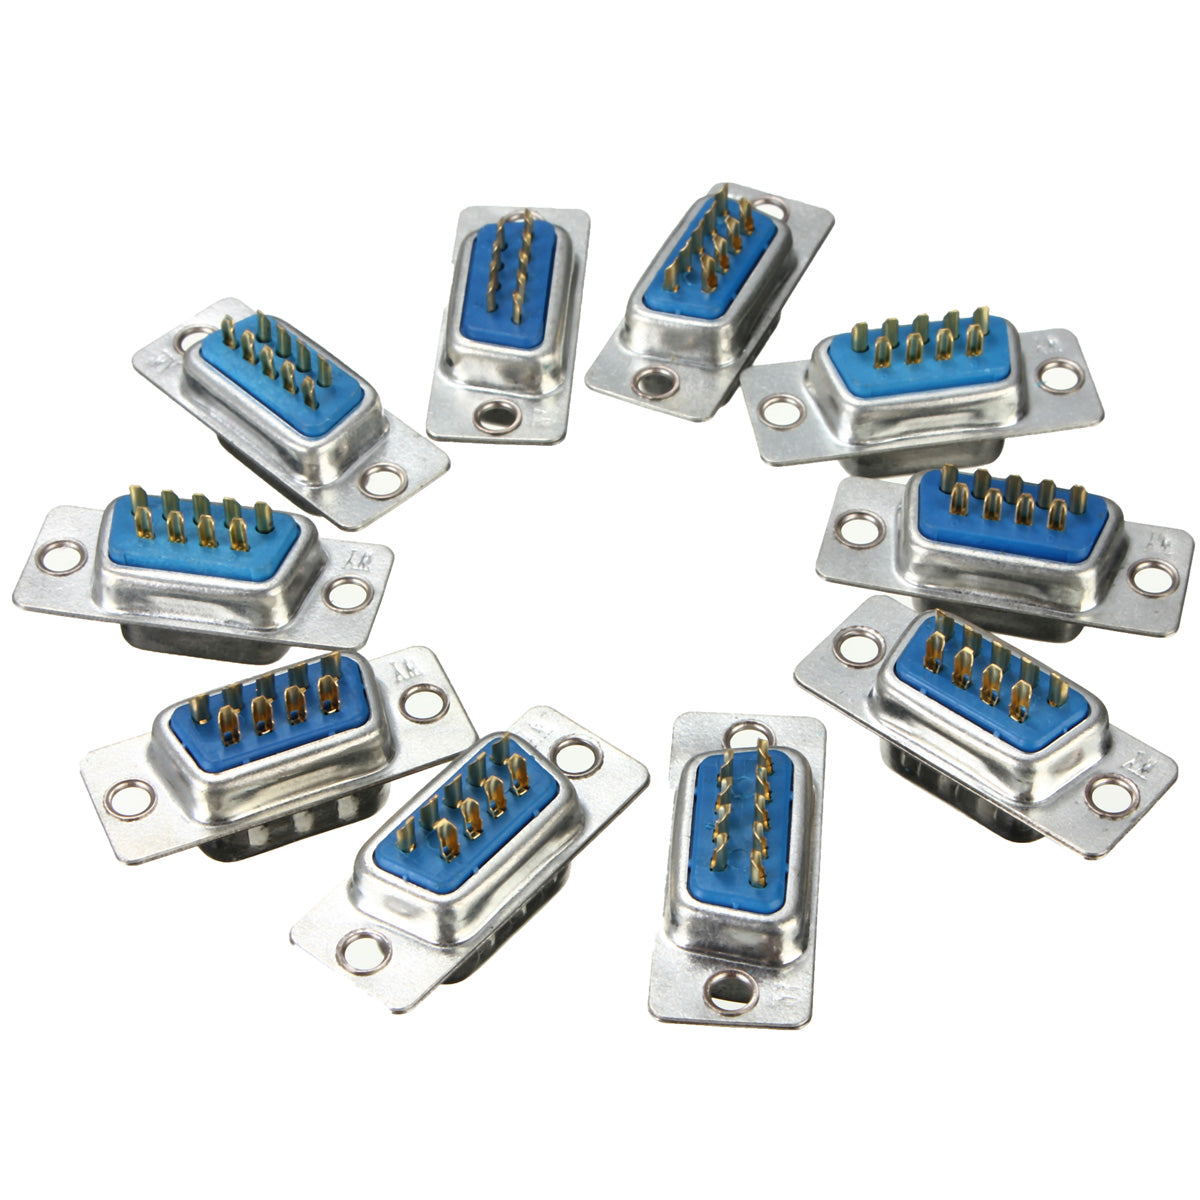 10Pcs RS232 Serial Port 9 Pin DB9 Connector Female Male Solder Soldering Plug